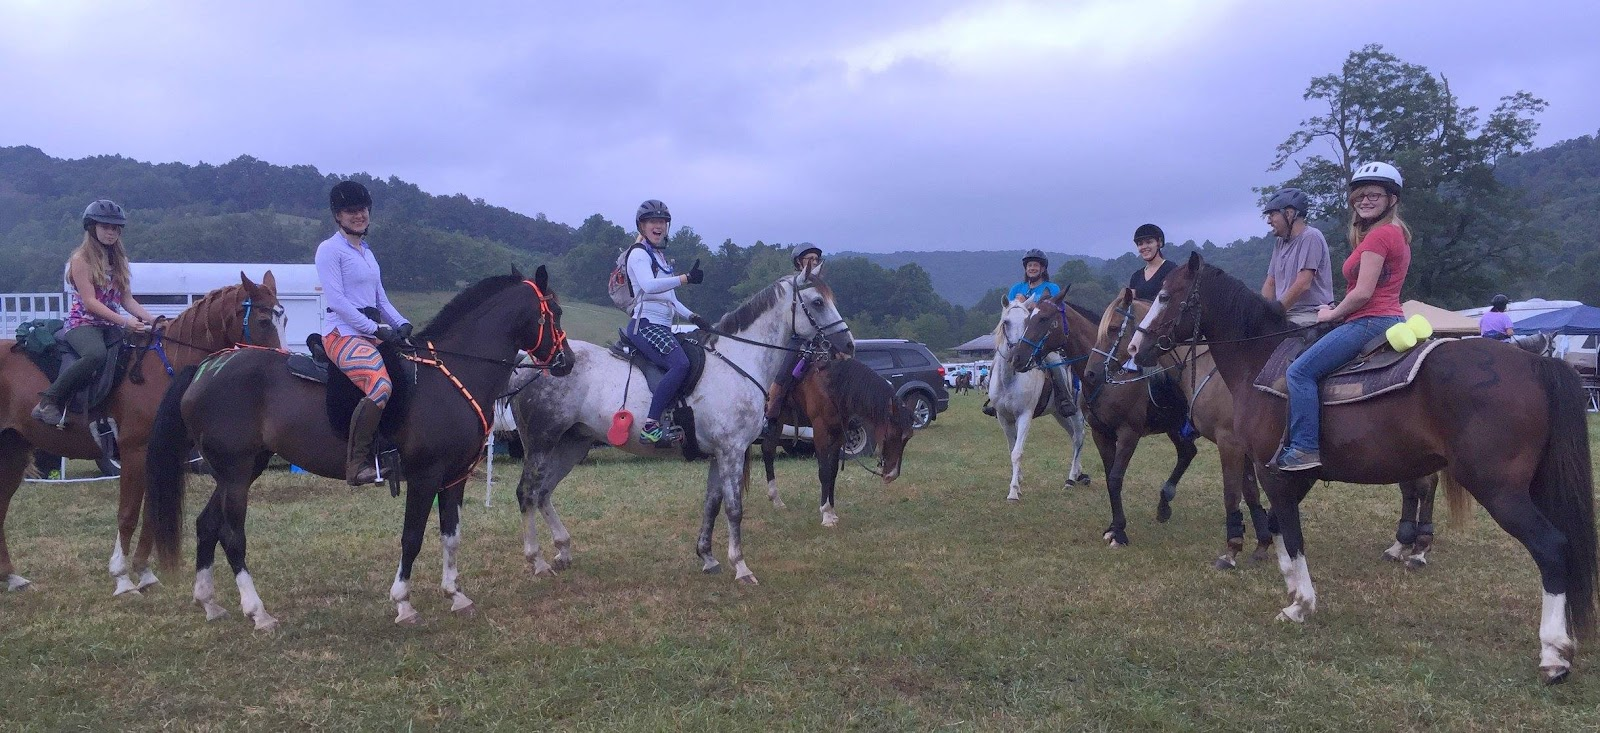 Left to right: Lauren on Shiloh, Me on Q, Liz on Griffin, Charlie on Dakota, Dan on Butch, Jess on Lilly, Carlos on Gracie, and Orion on Nell. Photo by Nicole.